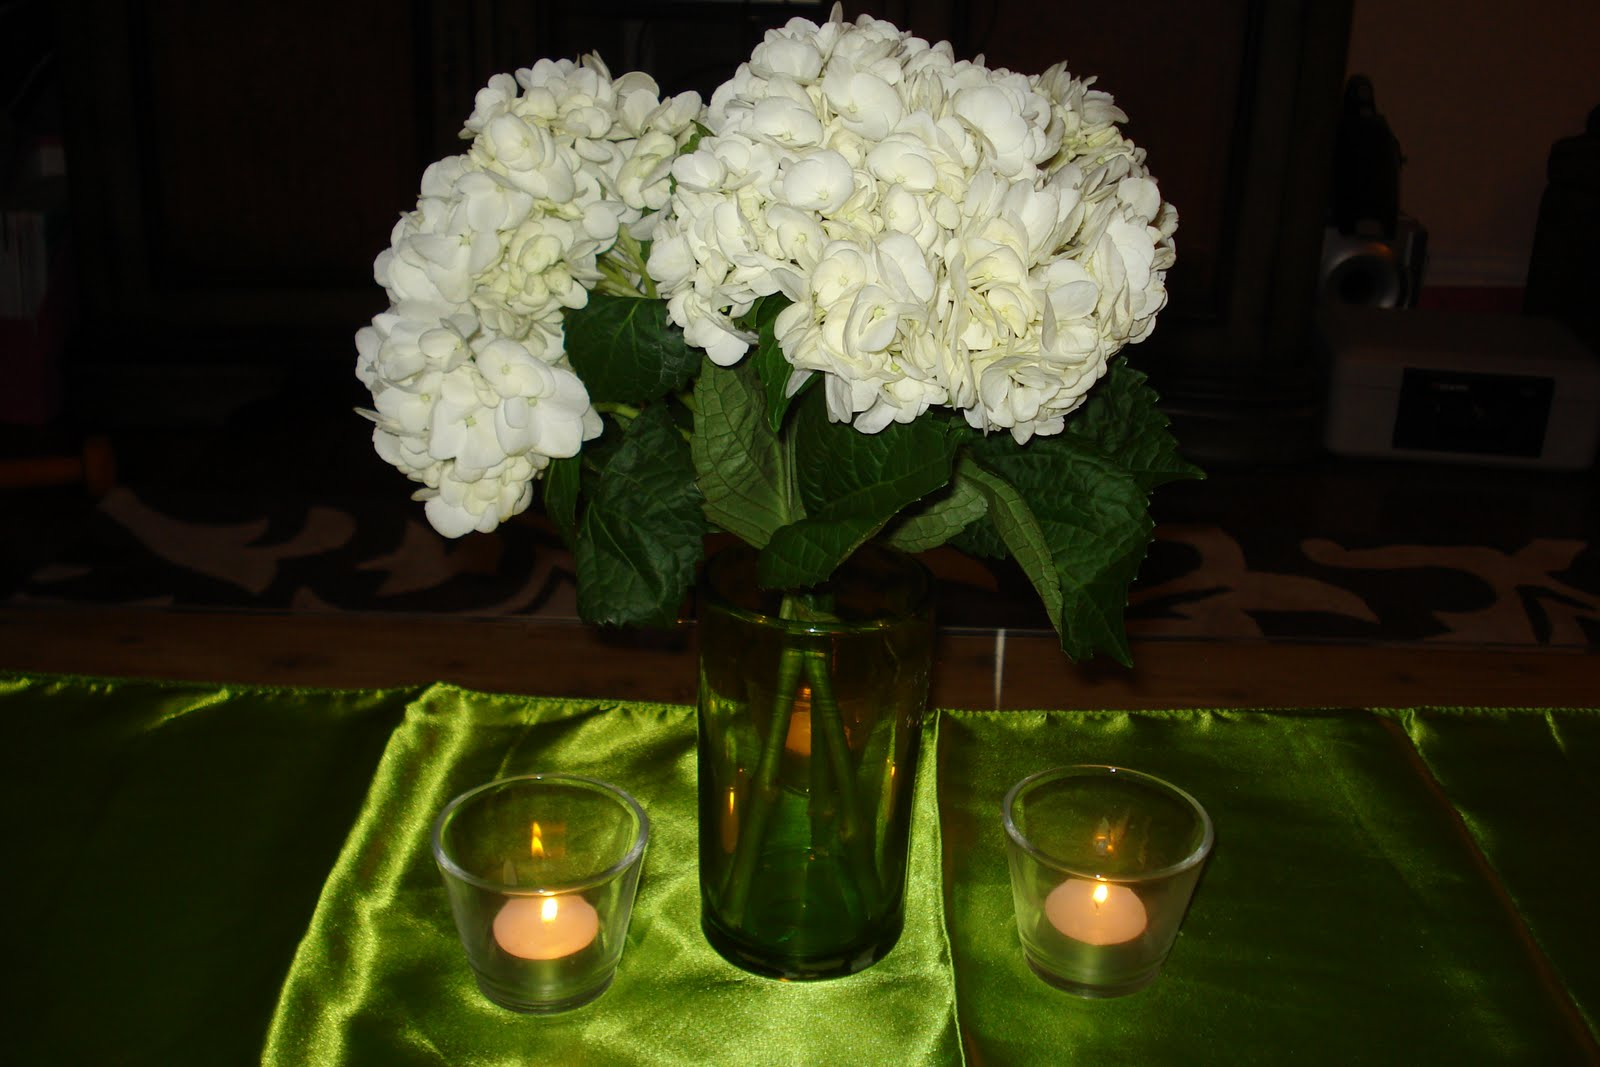 Image Result For Candles And Flowers Wedding Centerpieces